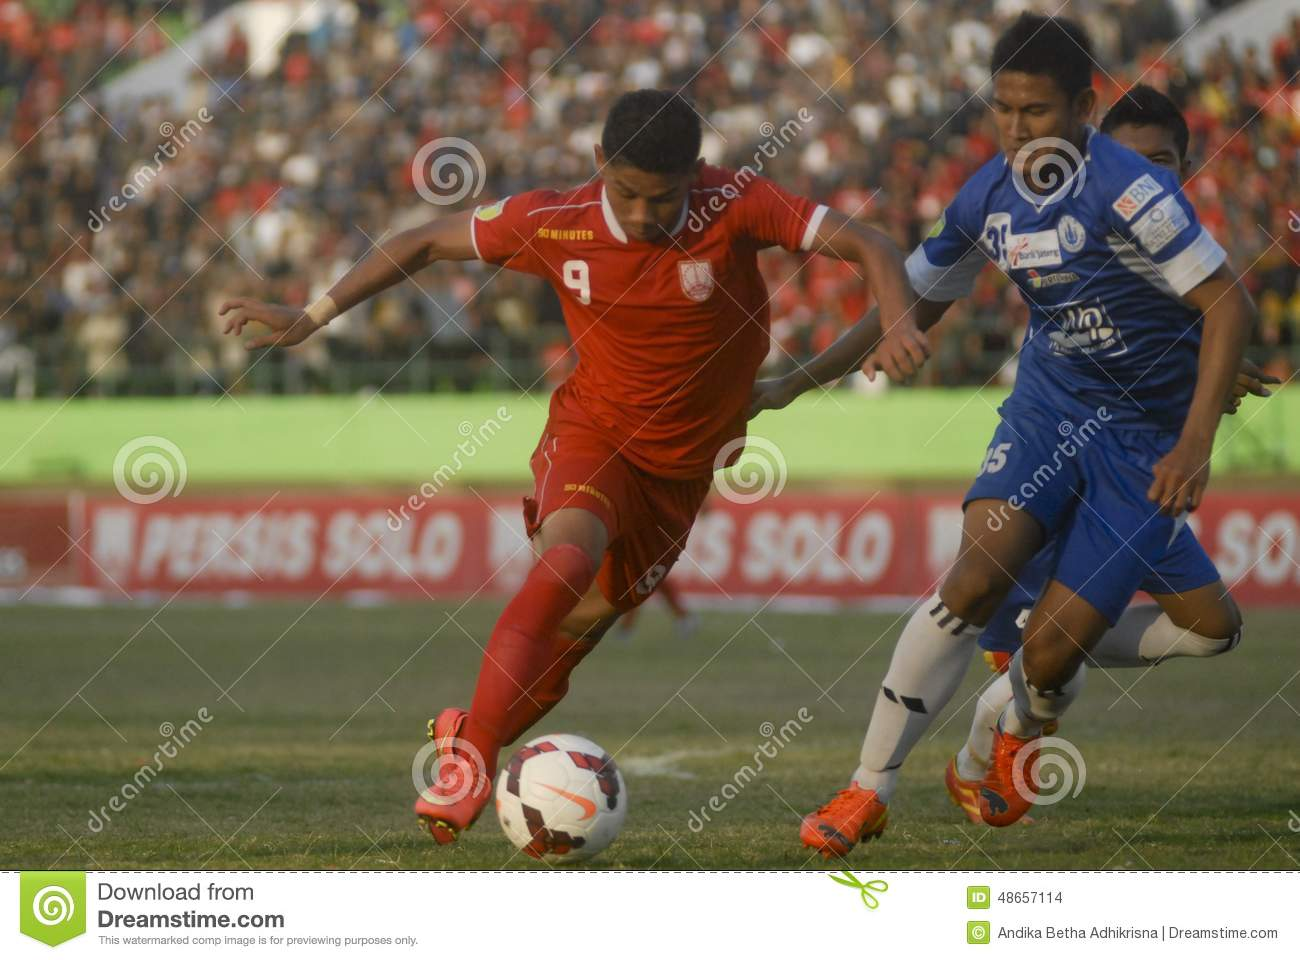 TROUBLESOME INDONESIAN SOCCER WORLD